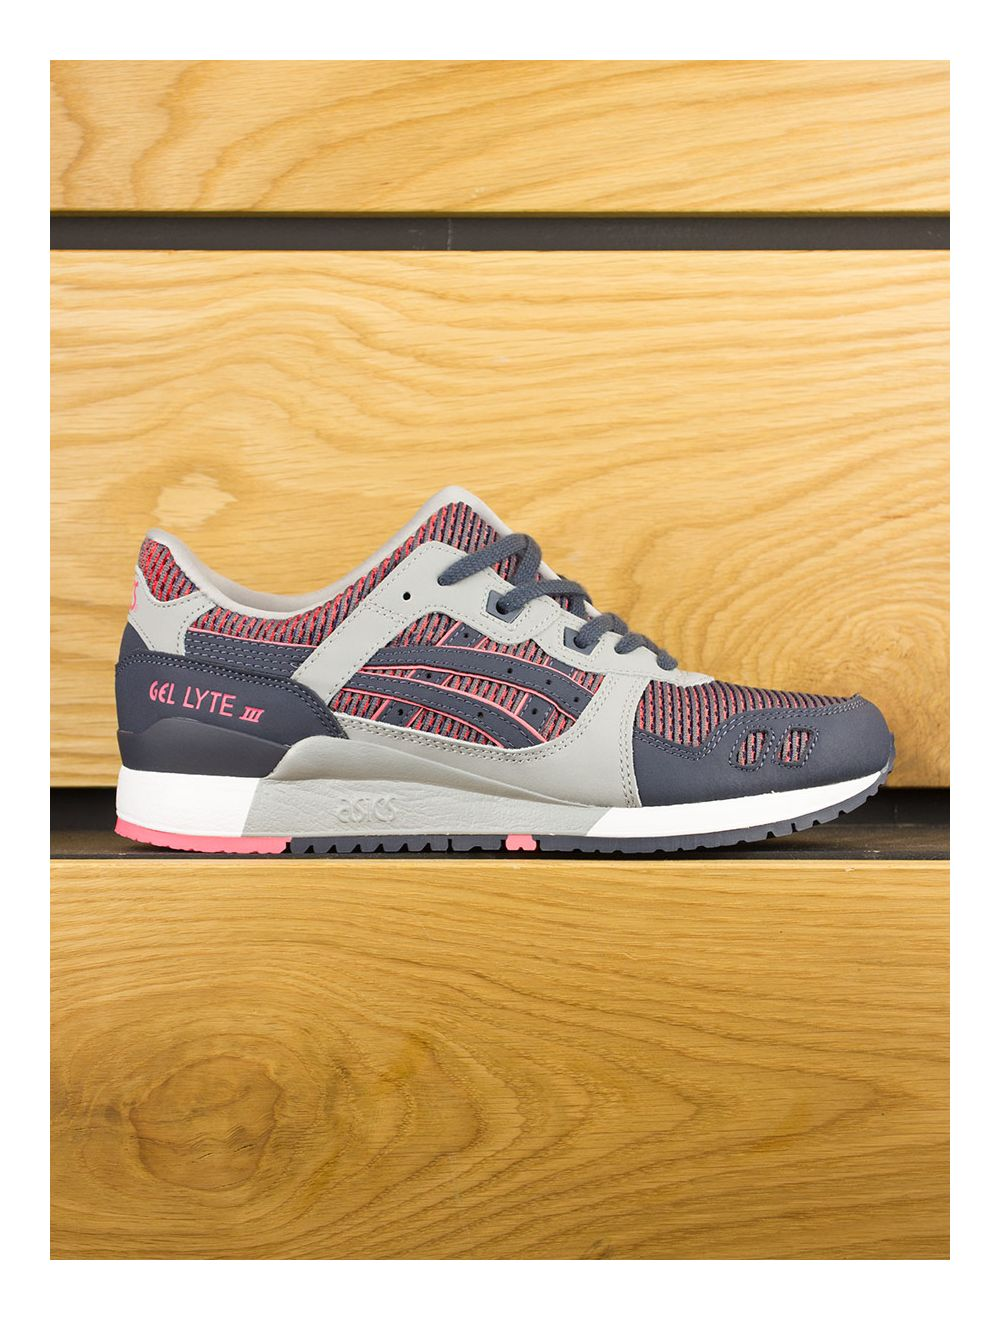 outlet store 6b68a c76c4 Asics Gel-Lyte III 'Chameleoid Mesh Pack' - Medium Grey Guava